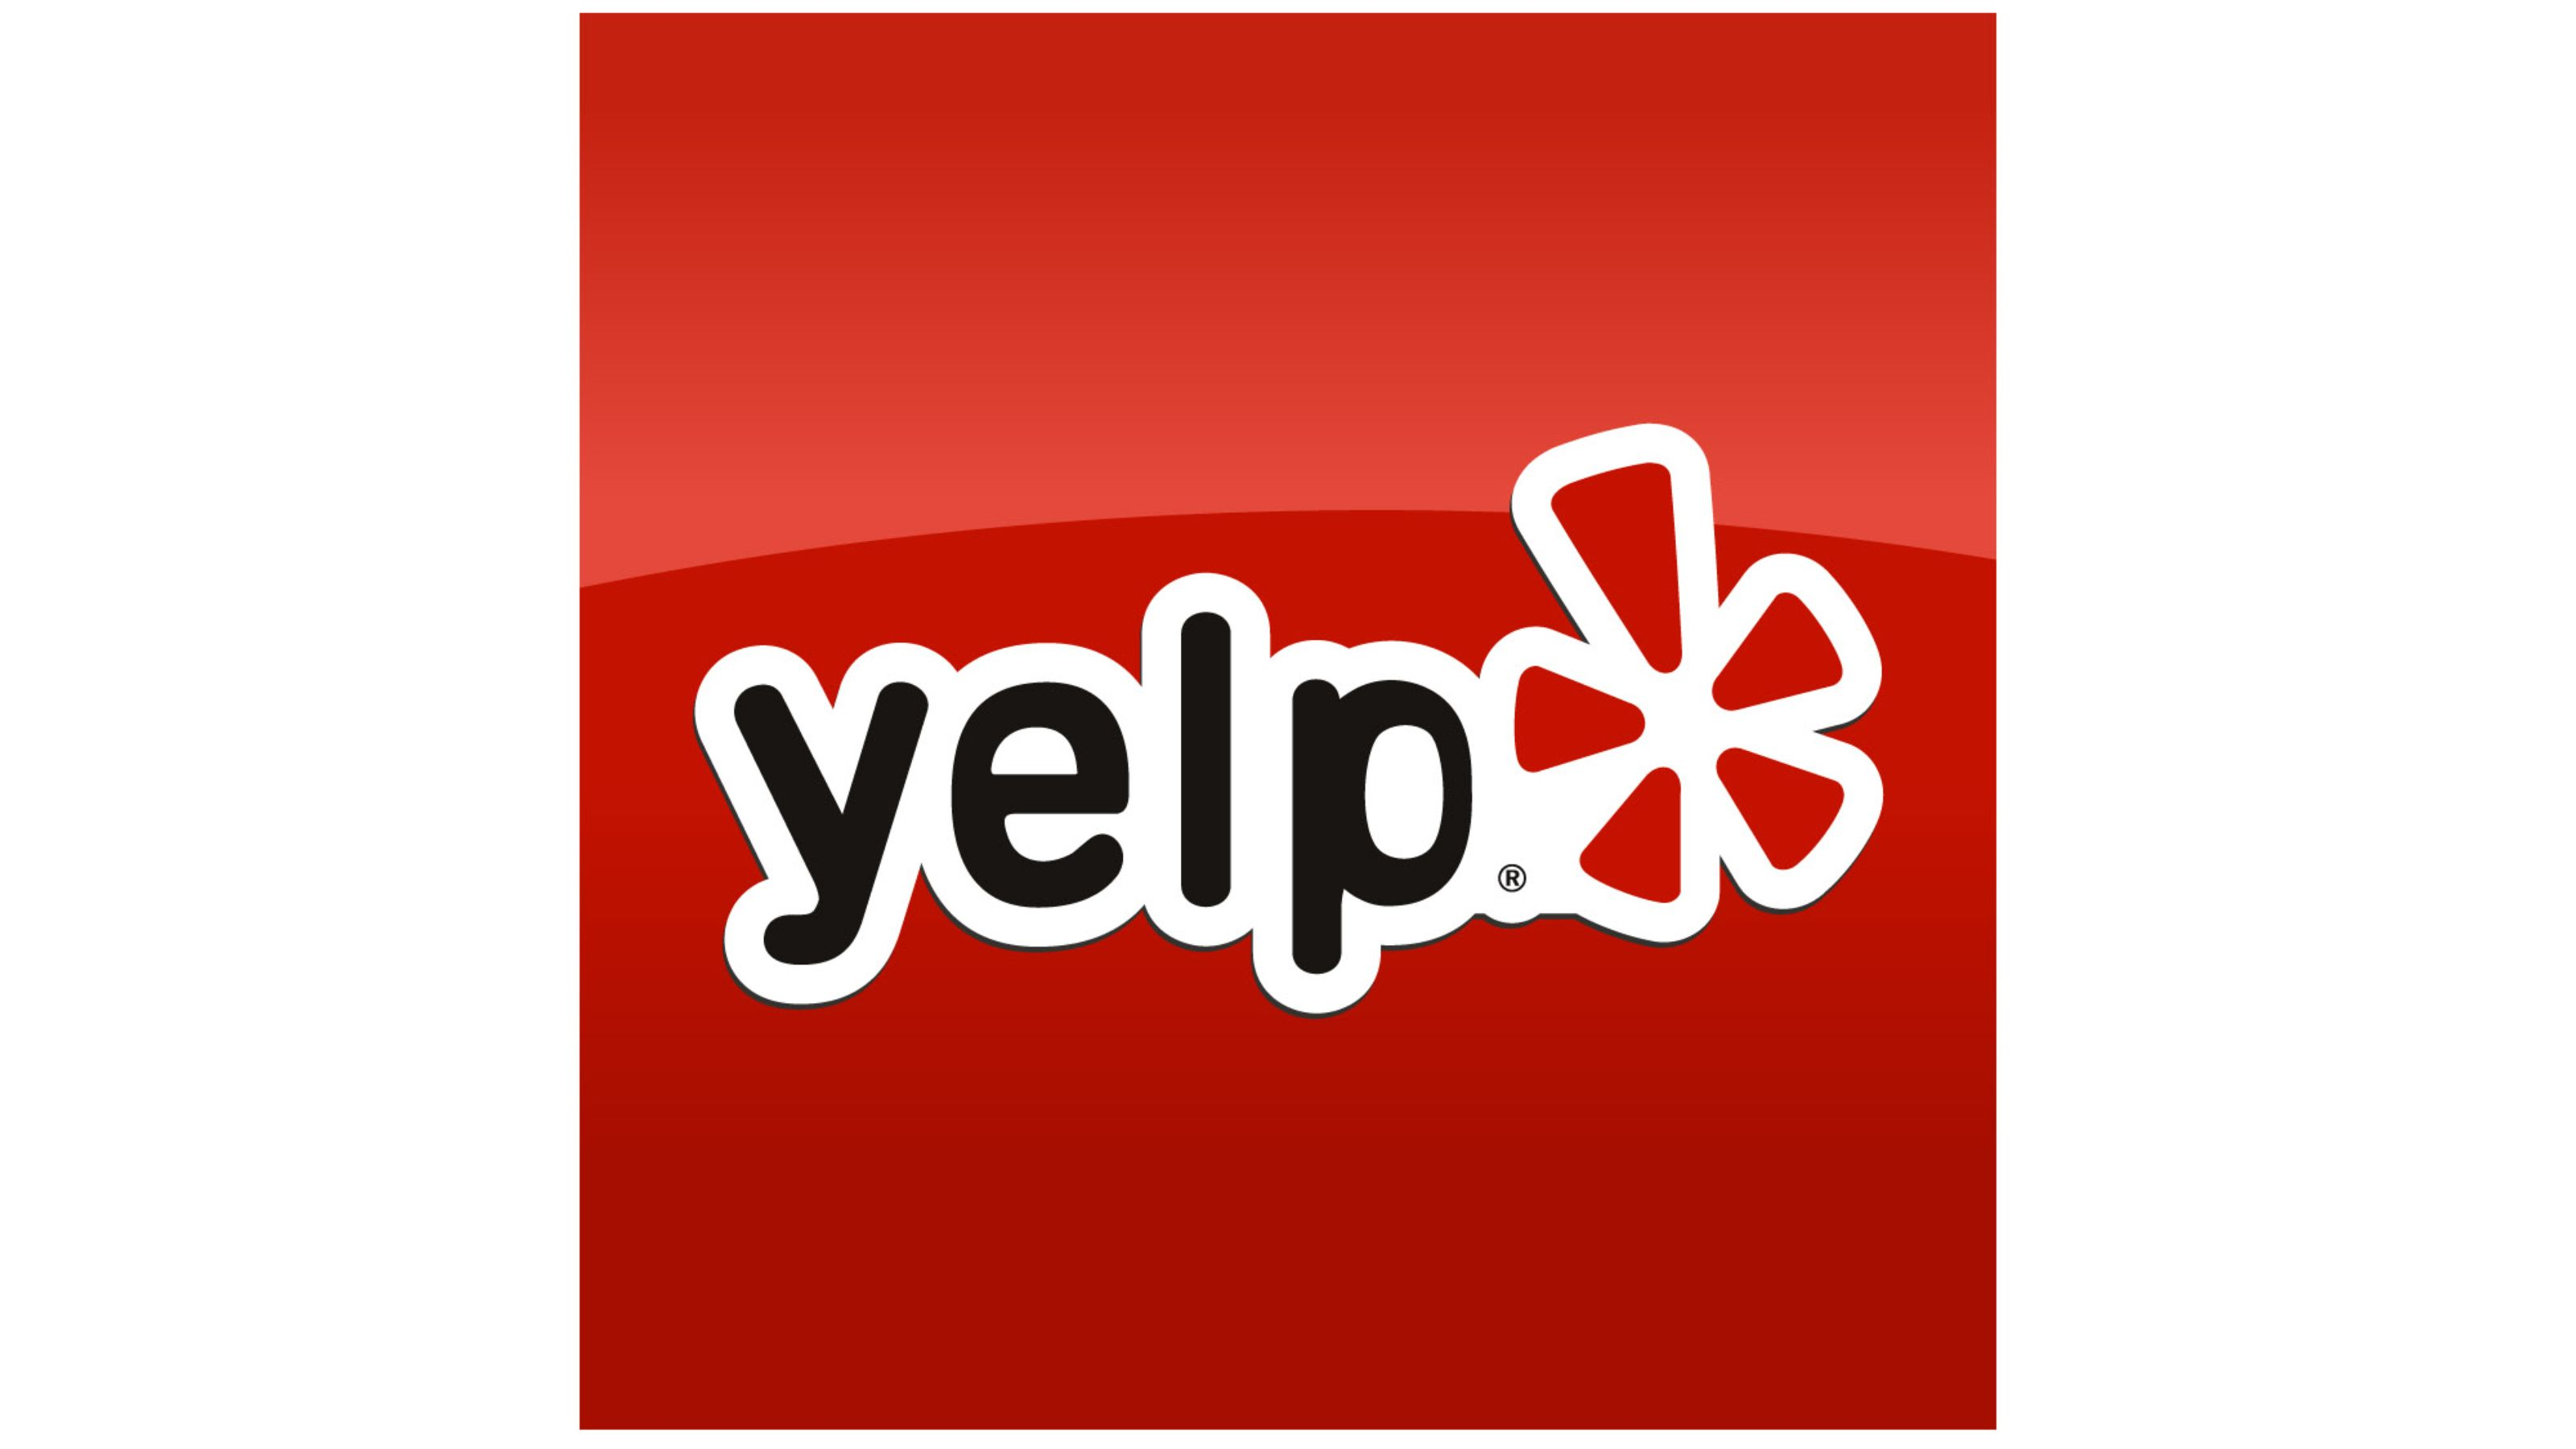 Yelp logo clipart clip art royalty free stock Dryer Vent Cleaning Reviews | NJ Air Duct Cleaning Reviews clip art royalty free stock